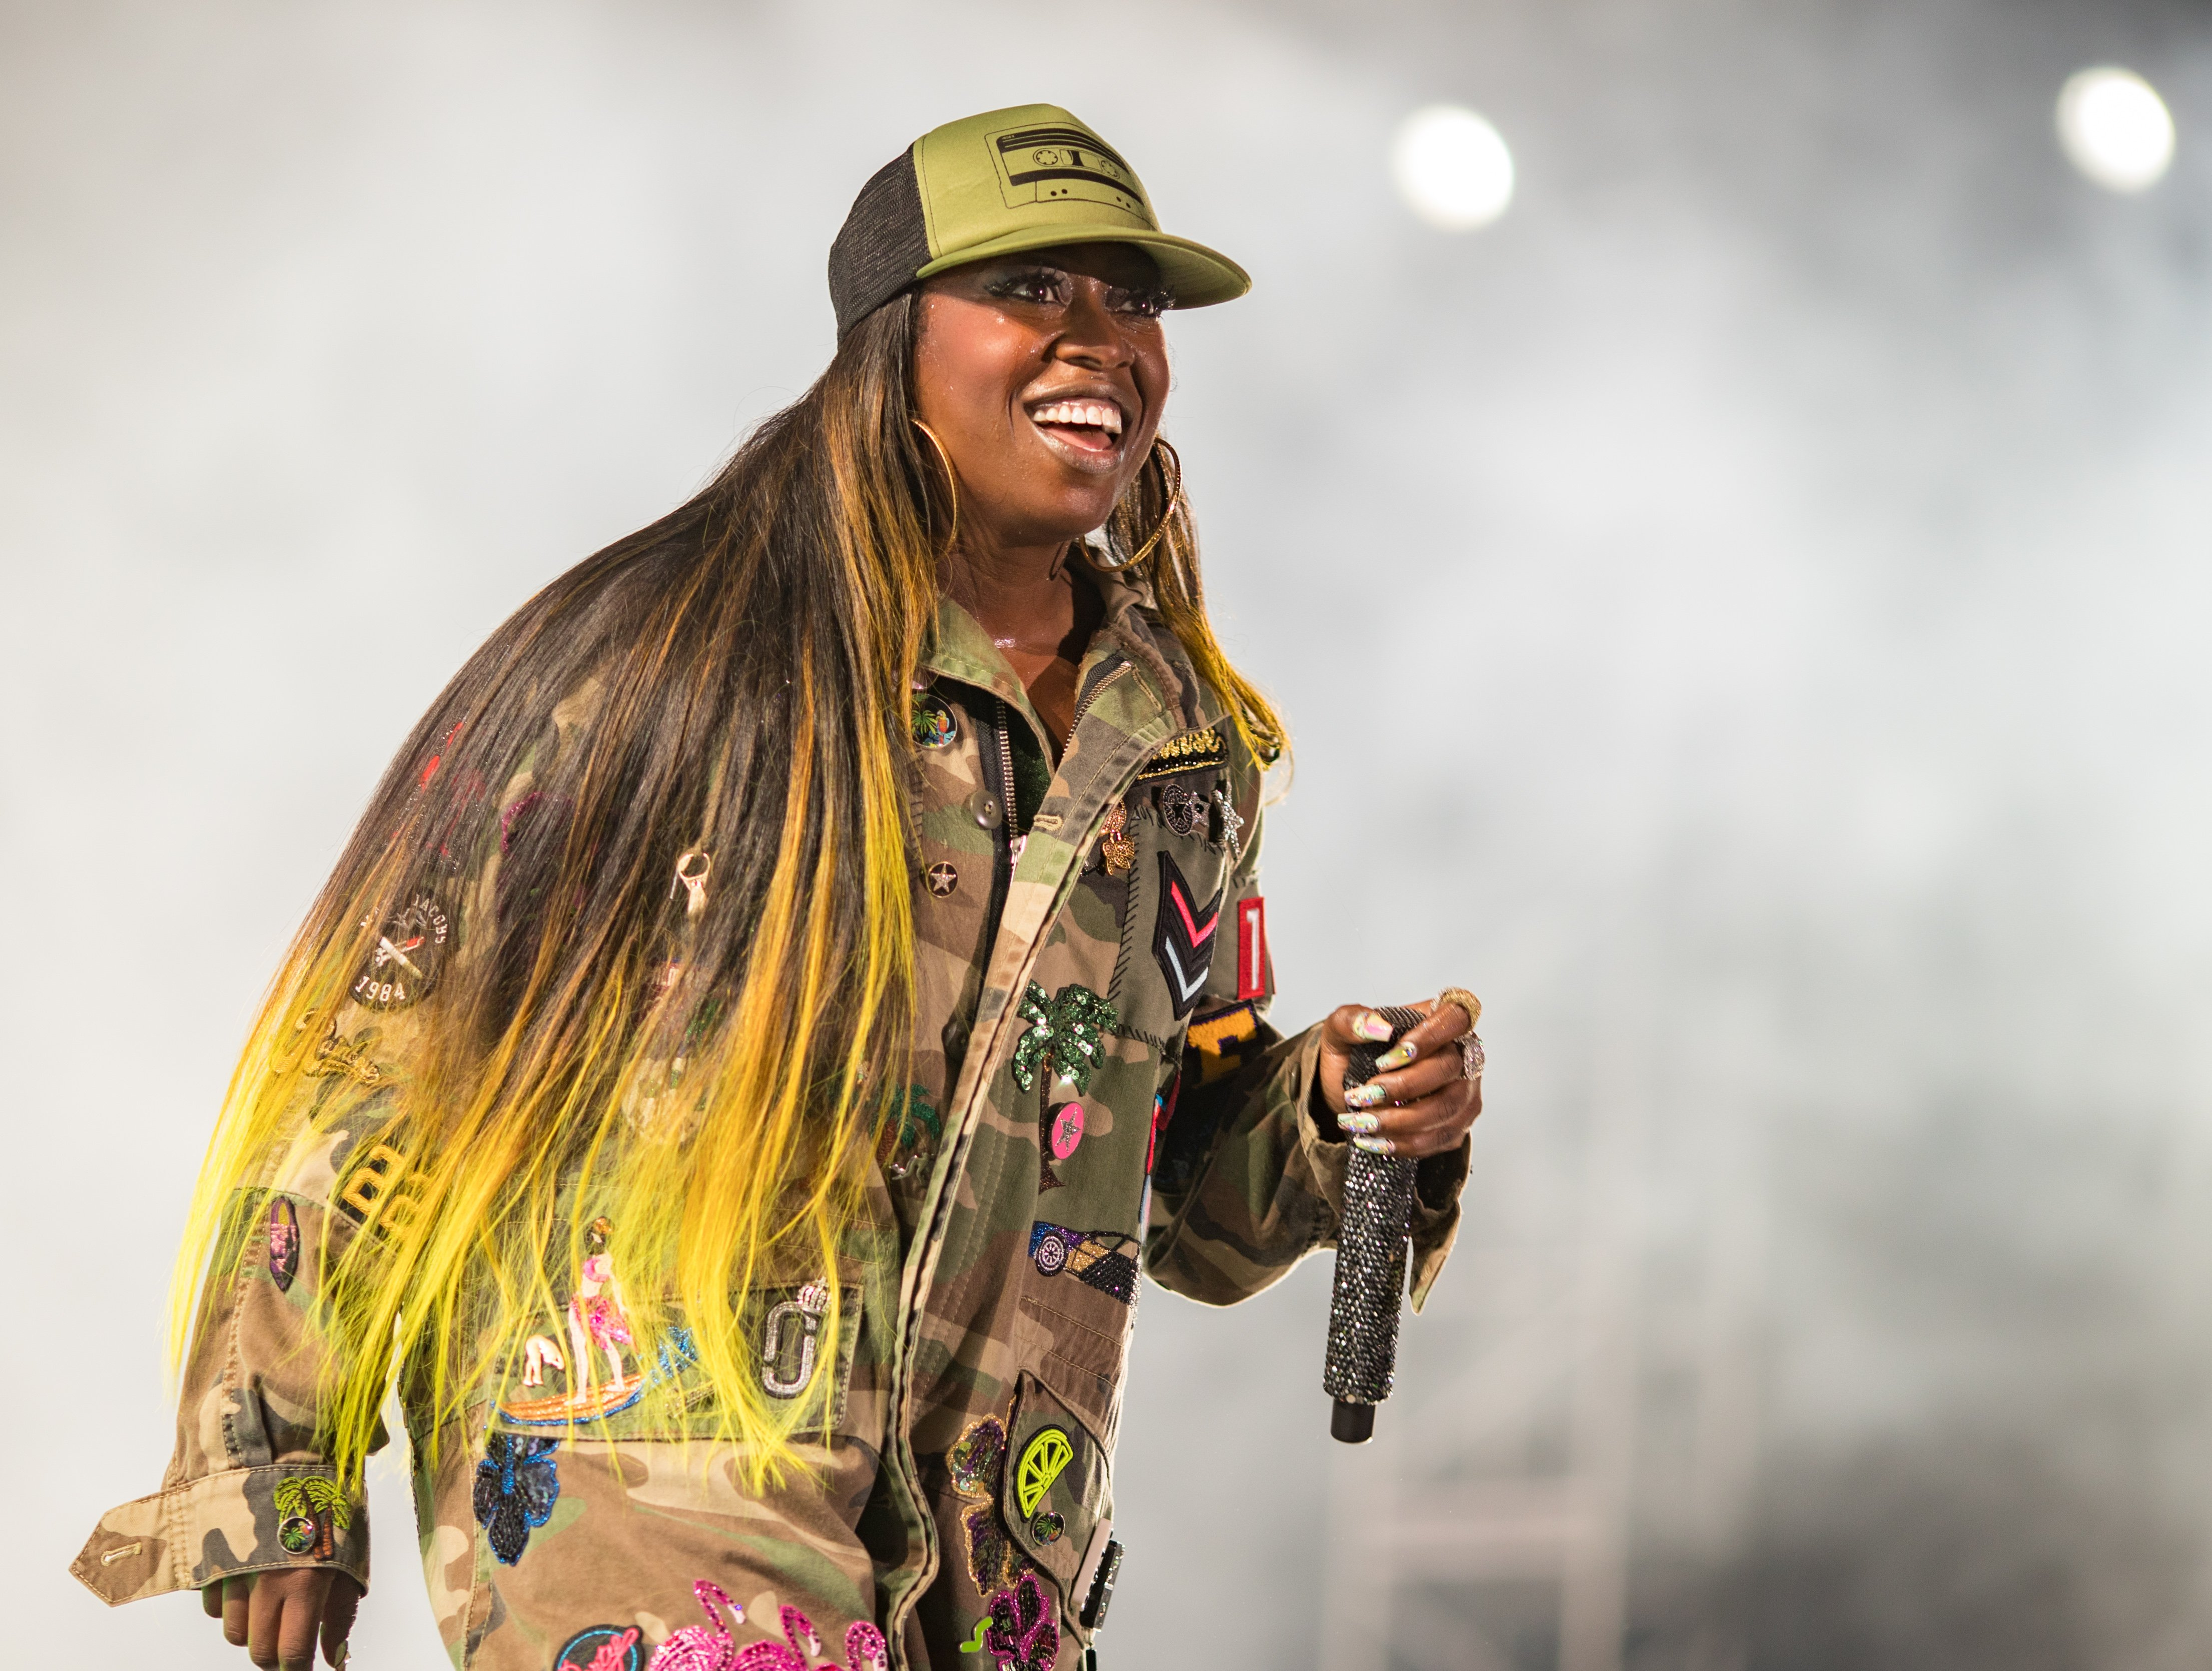 Missy Elliott performs onstage during day 1 of FYF Fest 2017 on July 21, 2017 at Exposition Park in Los Angeles, California | Photo: GettyImages